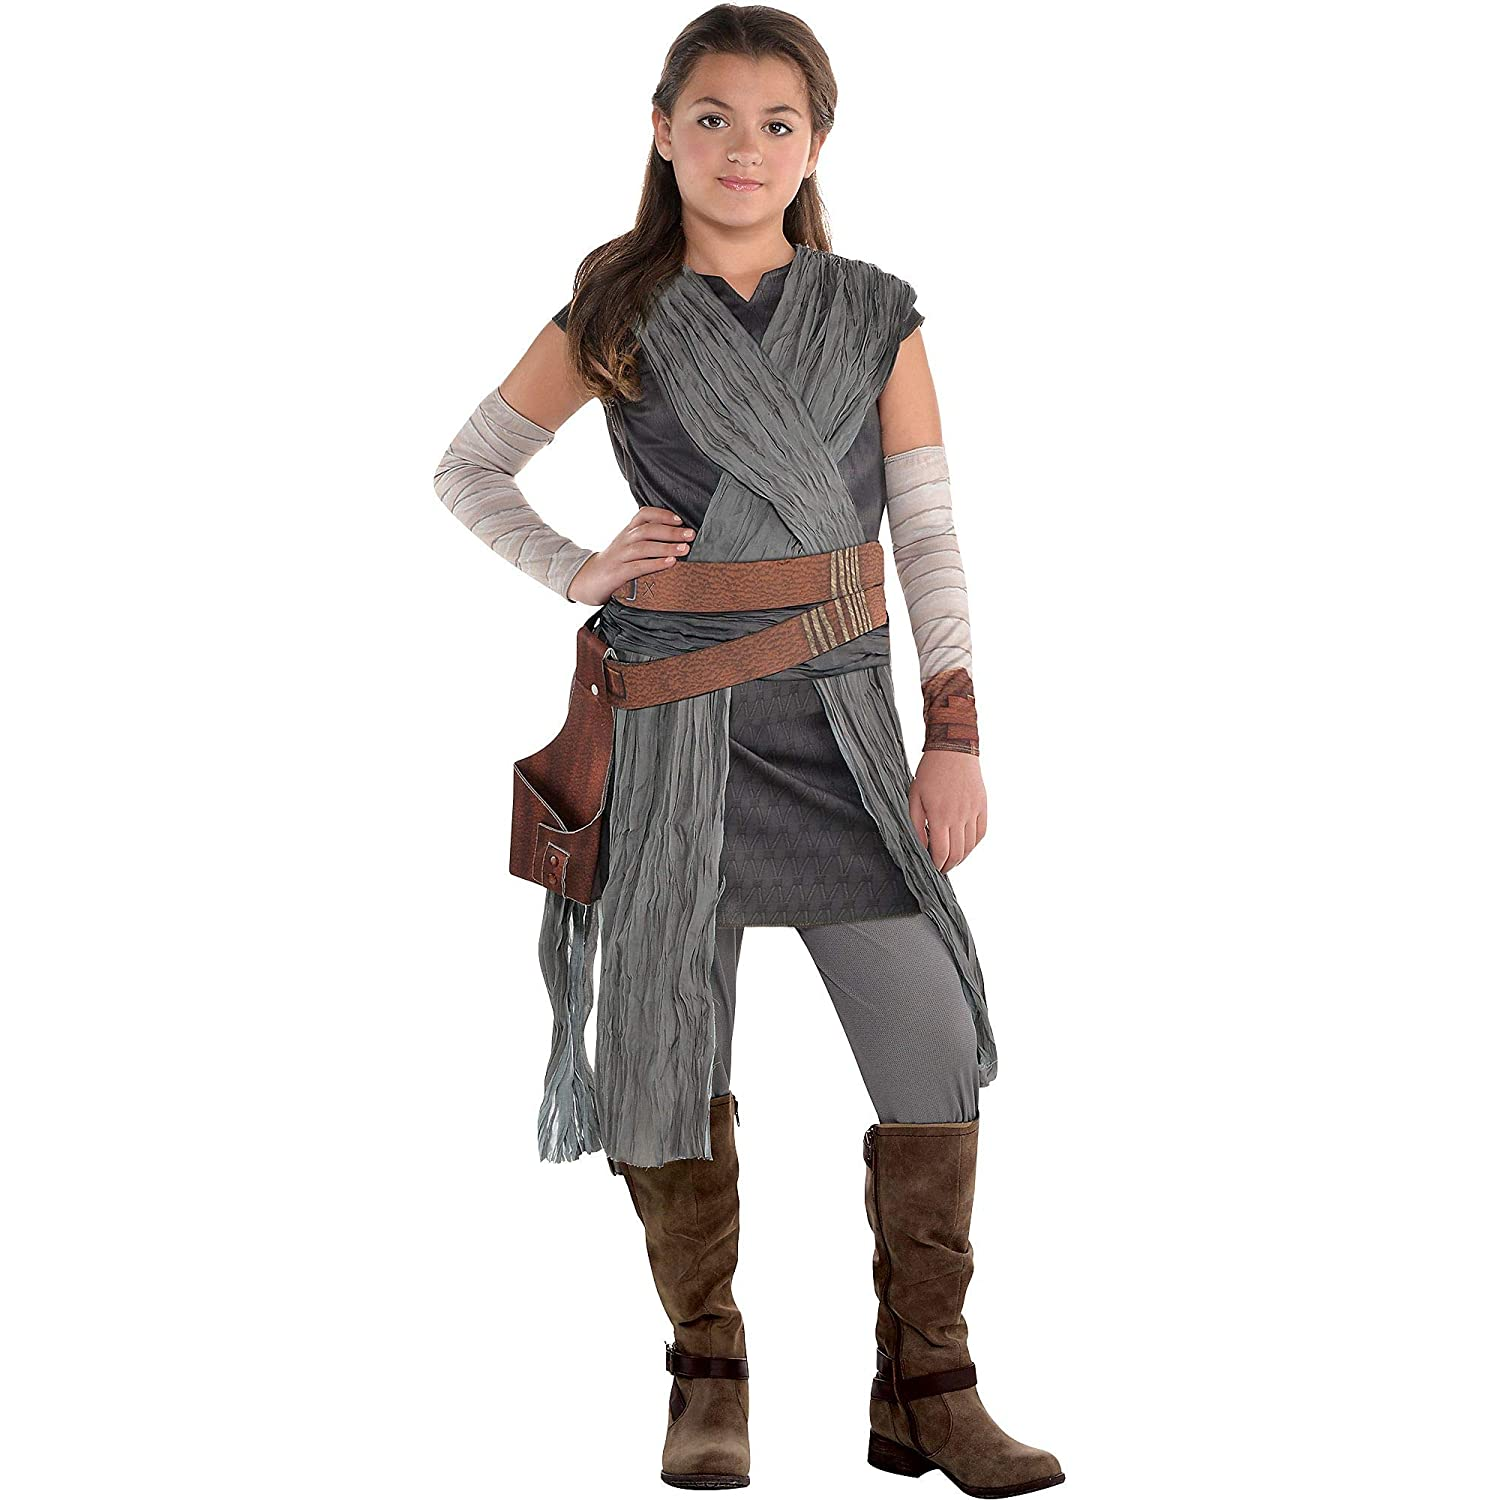 Costumes USA Star Wars 8  The Last Jedi Rey Costume for Girls  Includes Jumpsuit with Wraps and Arm Warmers